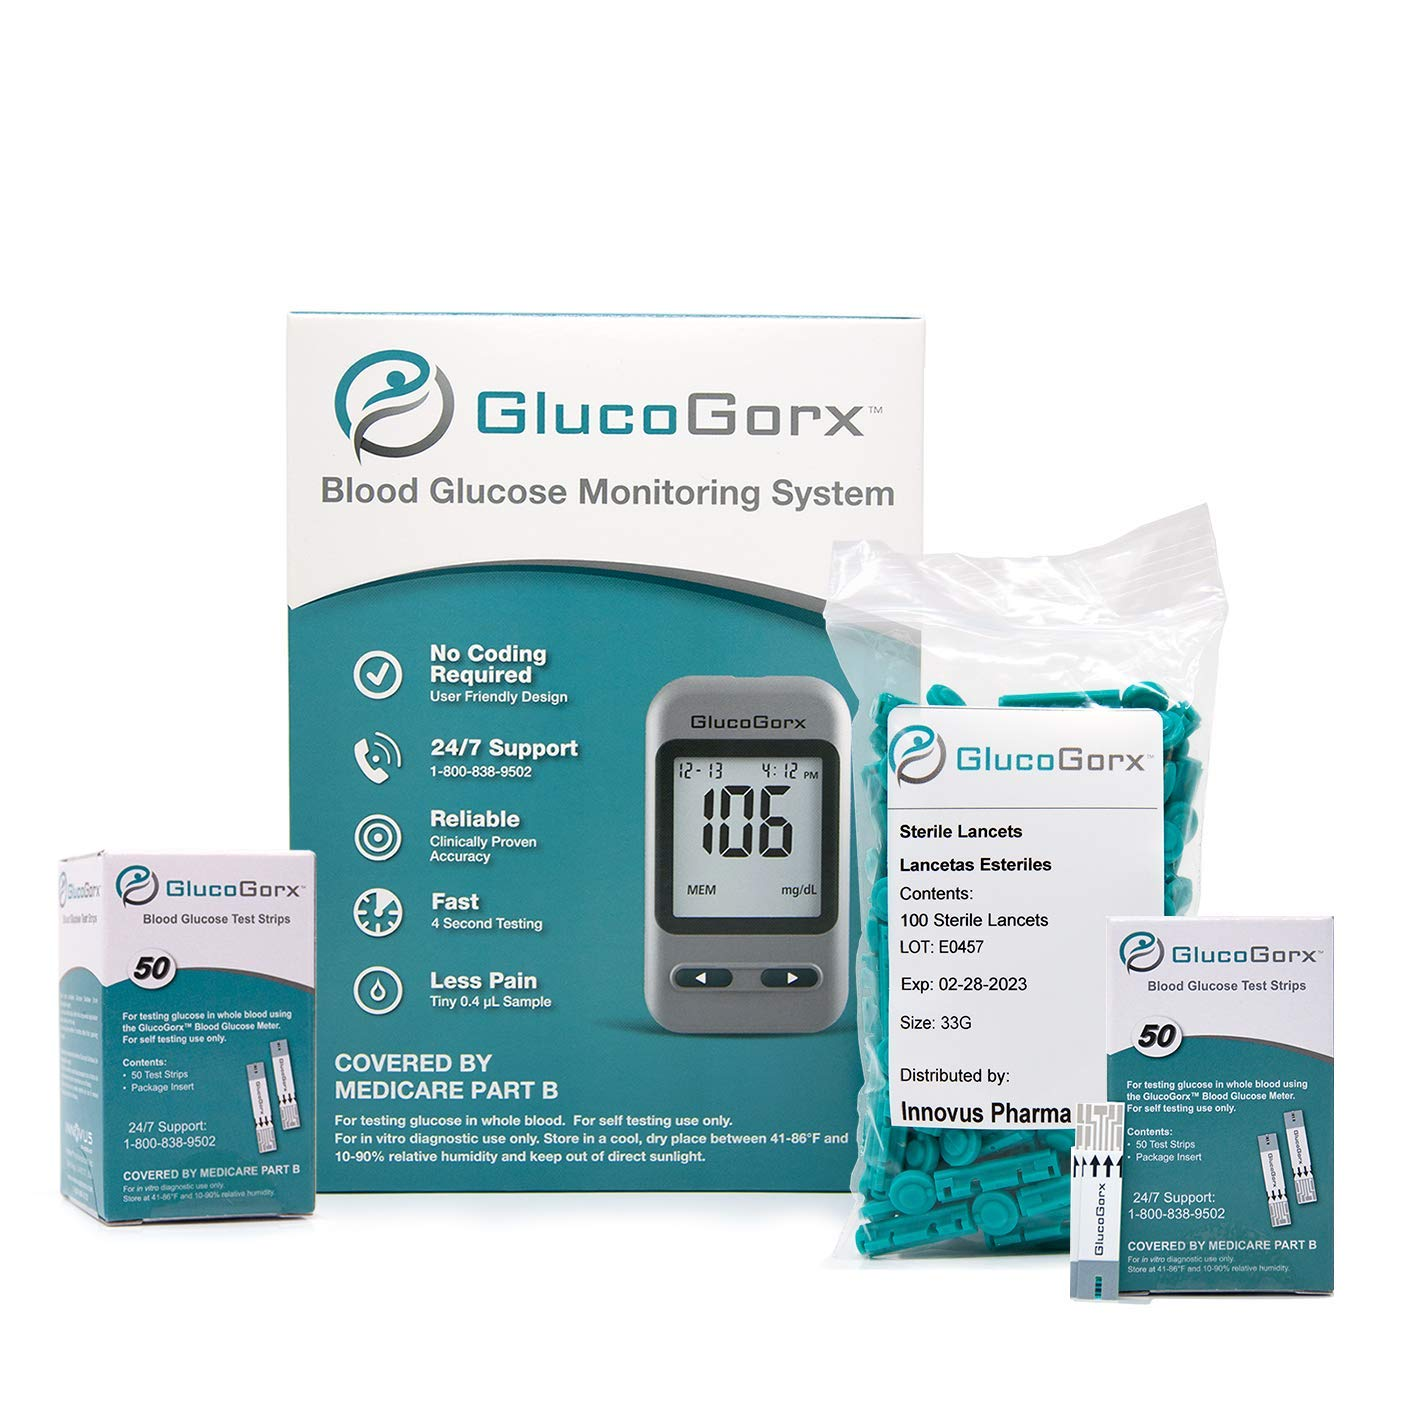 Blood Glucose Diabetes Testing Kit by GlucoGorx - Includes 110 Blood Test Strips, 125 Sterile Lancets, Glucometer, Depth Controlled Lancing Device, Control Solution and User Manual with Carrying Case